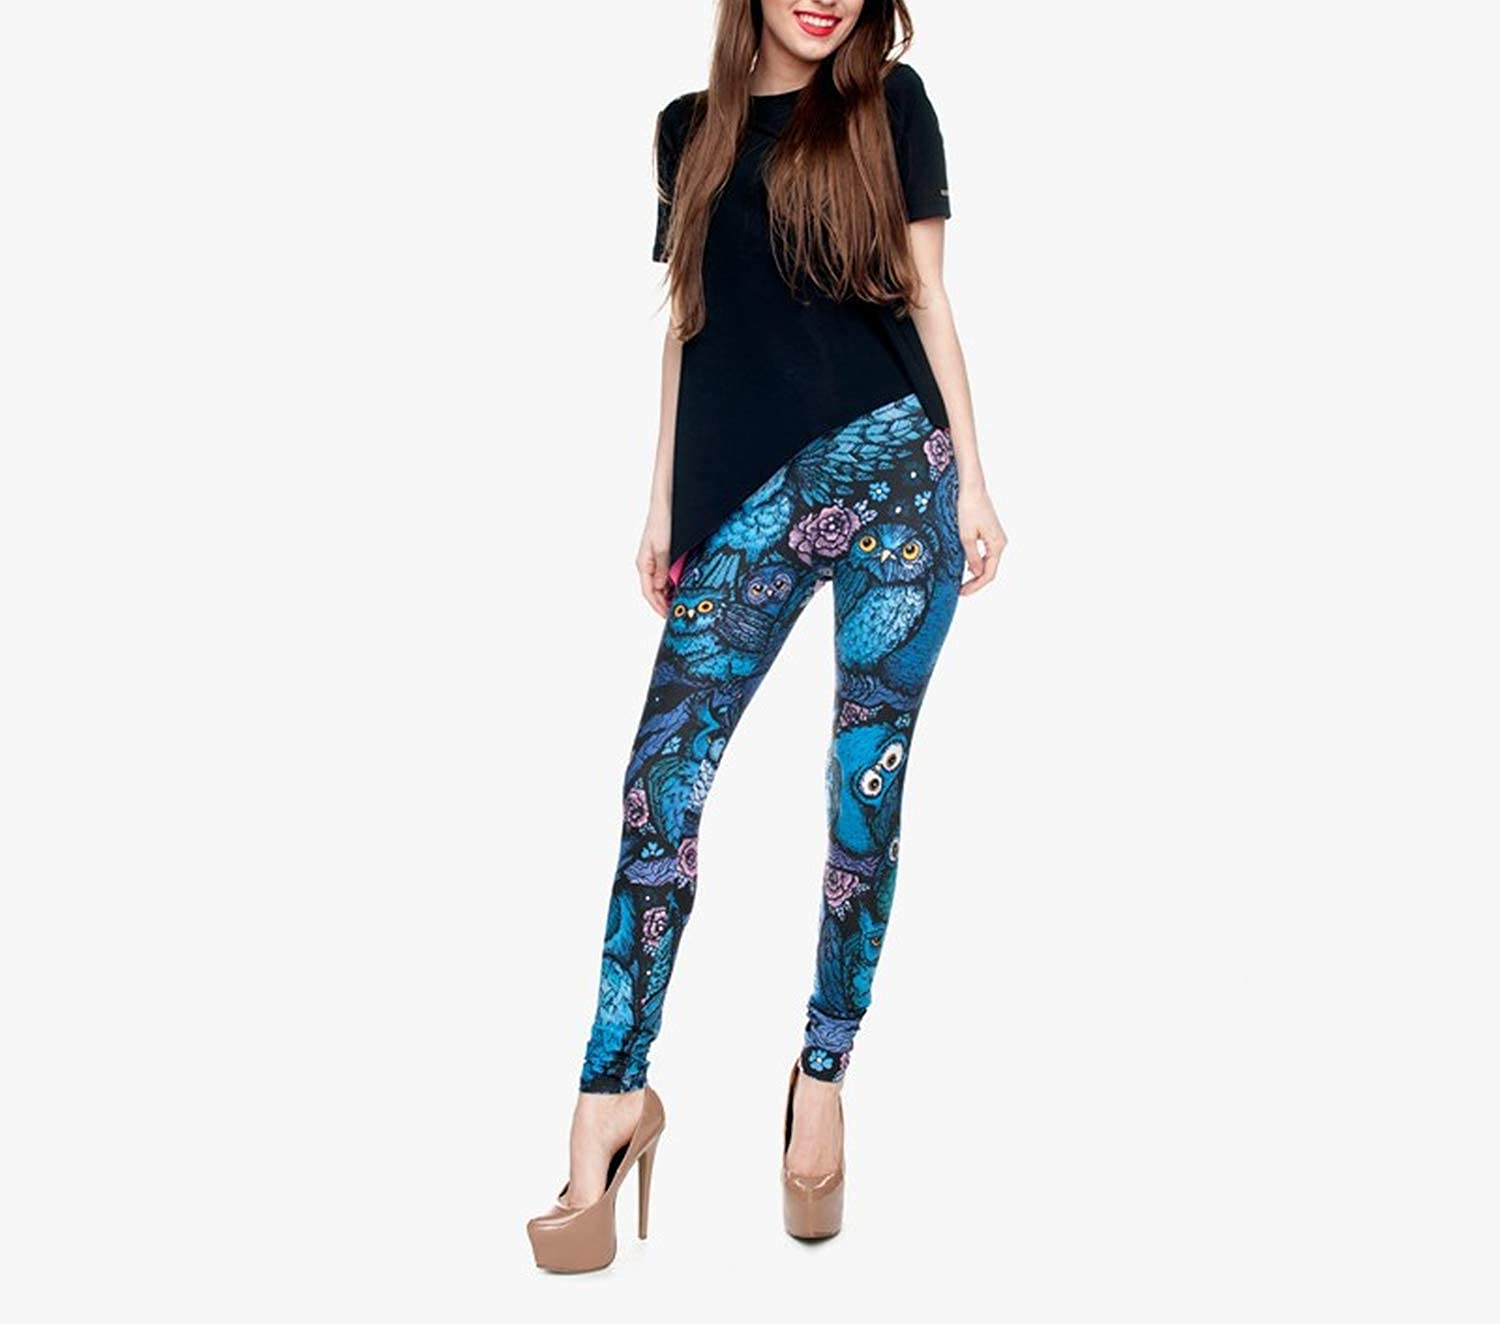 Night Owl Full Printing Pants Women Clothing Ladies Fitness Stretchy Trousers Skinny